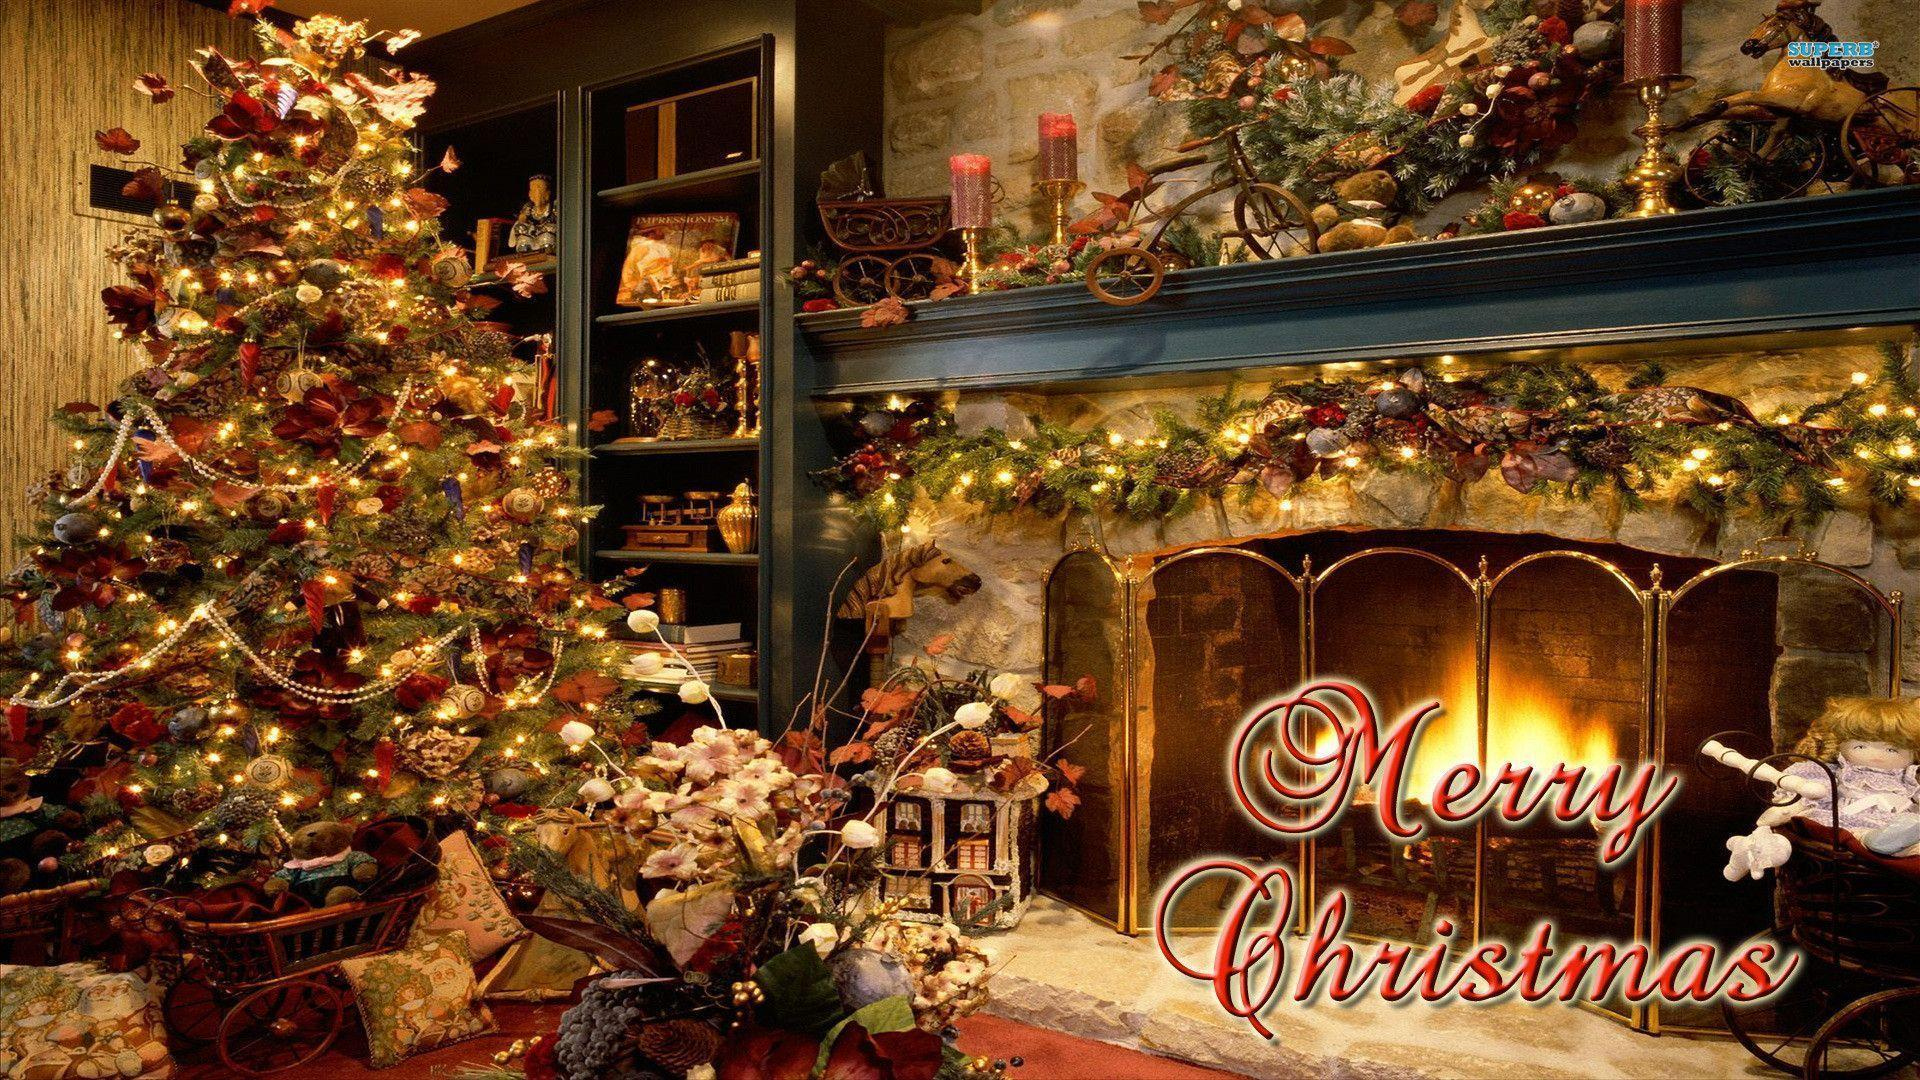 Christmas wallpapers 1920x1080 wallpaper cave - Free christmas images for desktop wallpaper ...